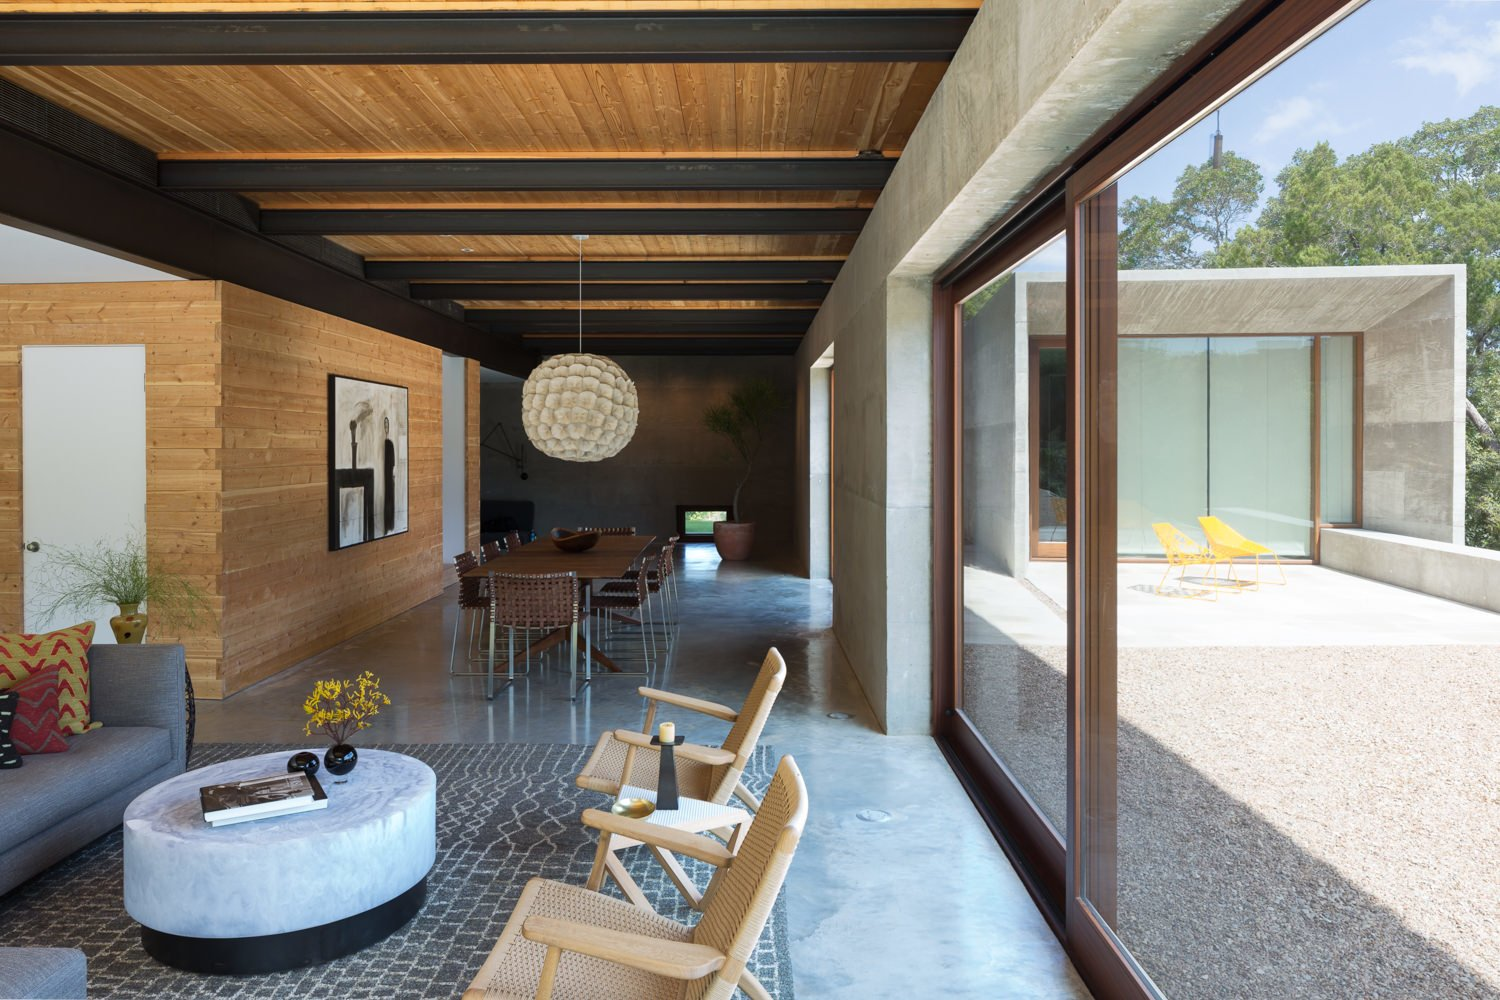 Dining Room, Concrete Floor, Pendant Lighting, Chair, and Table  Photo 5 of 14 in A Dramatic Roof and Board-Formed Concrete Keep This Texas Residence Cool